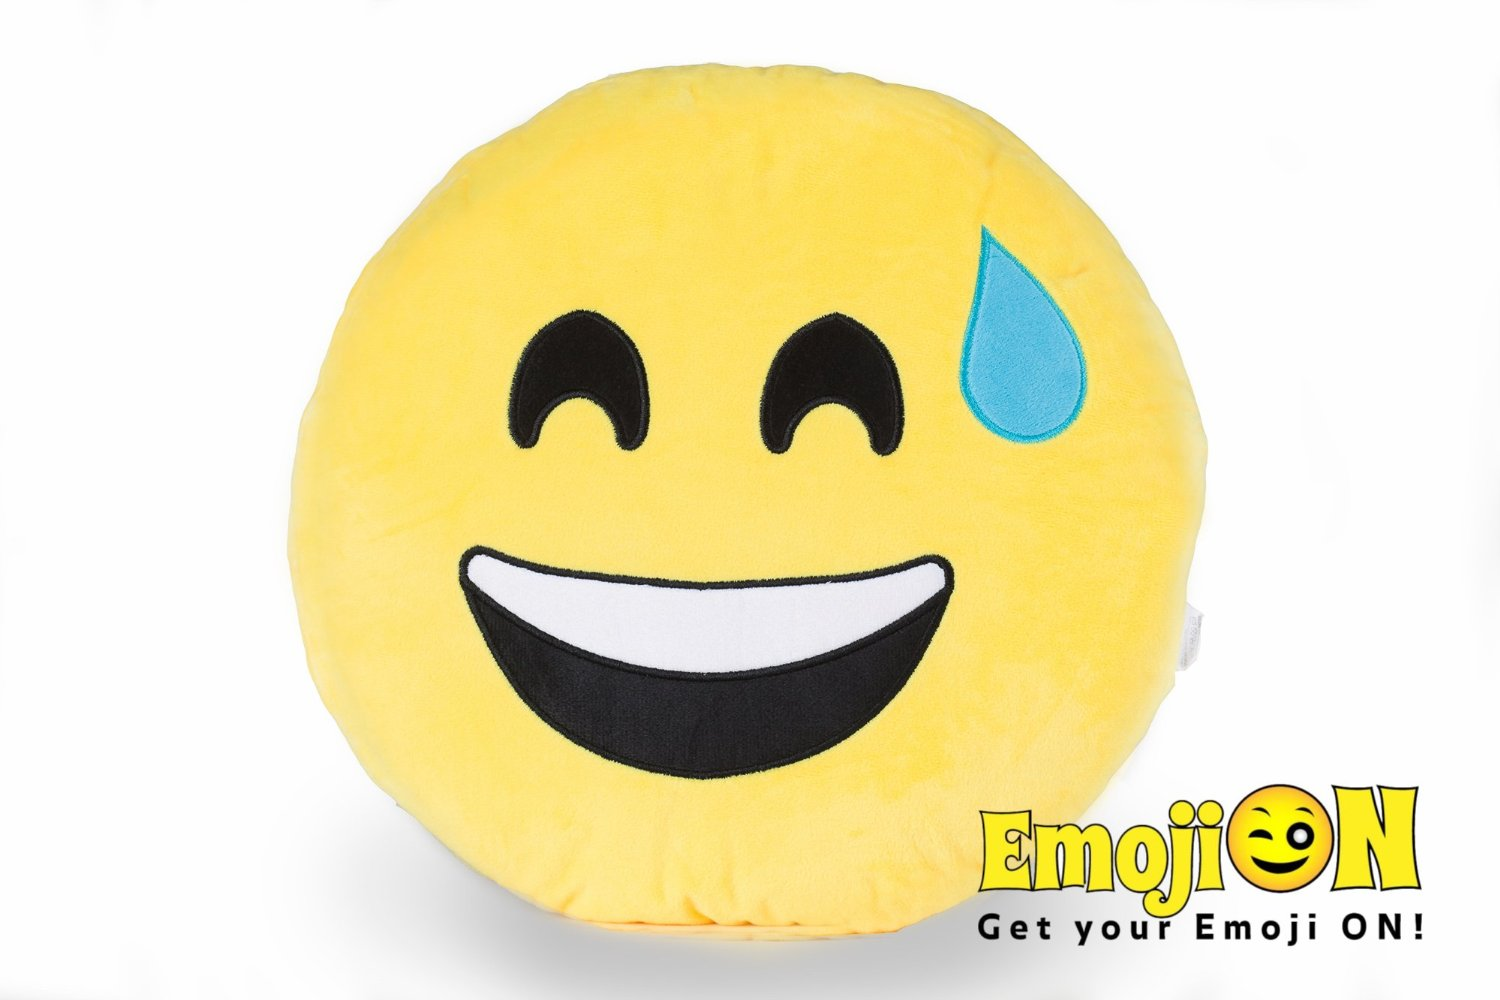 Stuffed Plush Emoji Pillow by EmojiON - Round Smiley Emoticon Pillow - Ultra Soft Plush Toy - Cute Bed Pillow, Fun Chair Cushion - Fluffy, Extra Large Pillow - Sweating - 14 inch (35cm)